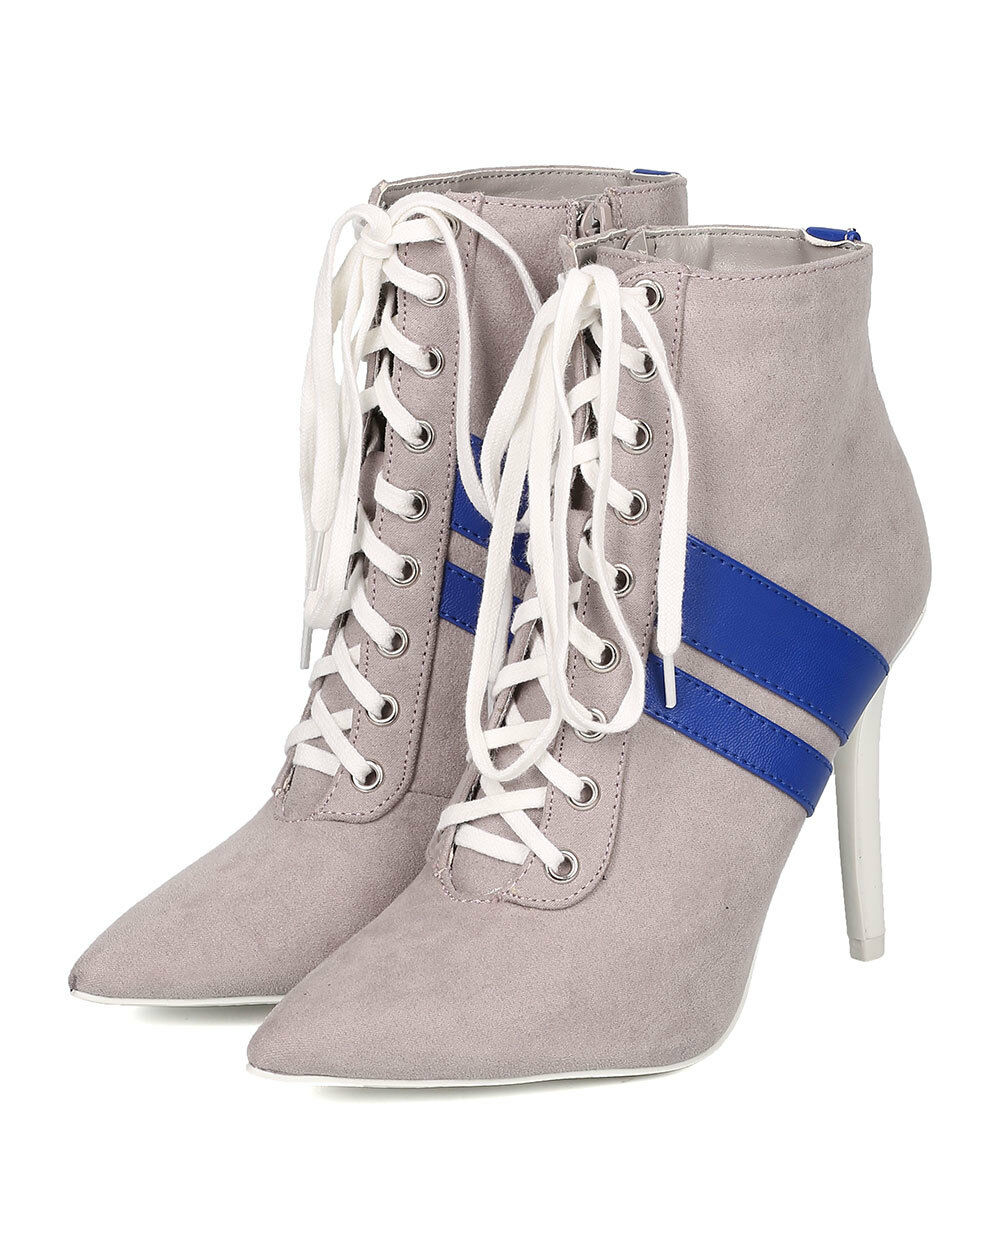 New Women Milia-58 Faux Suede Pointy Toe Lace Up Sportu Stiletto Bootie